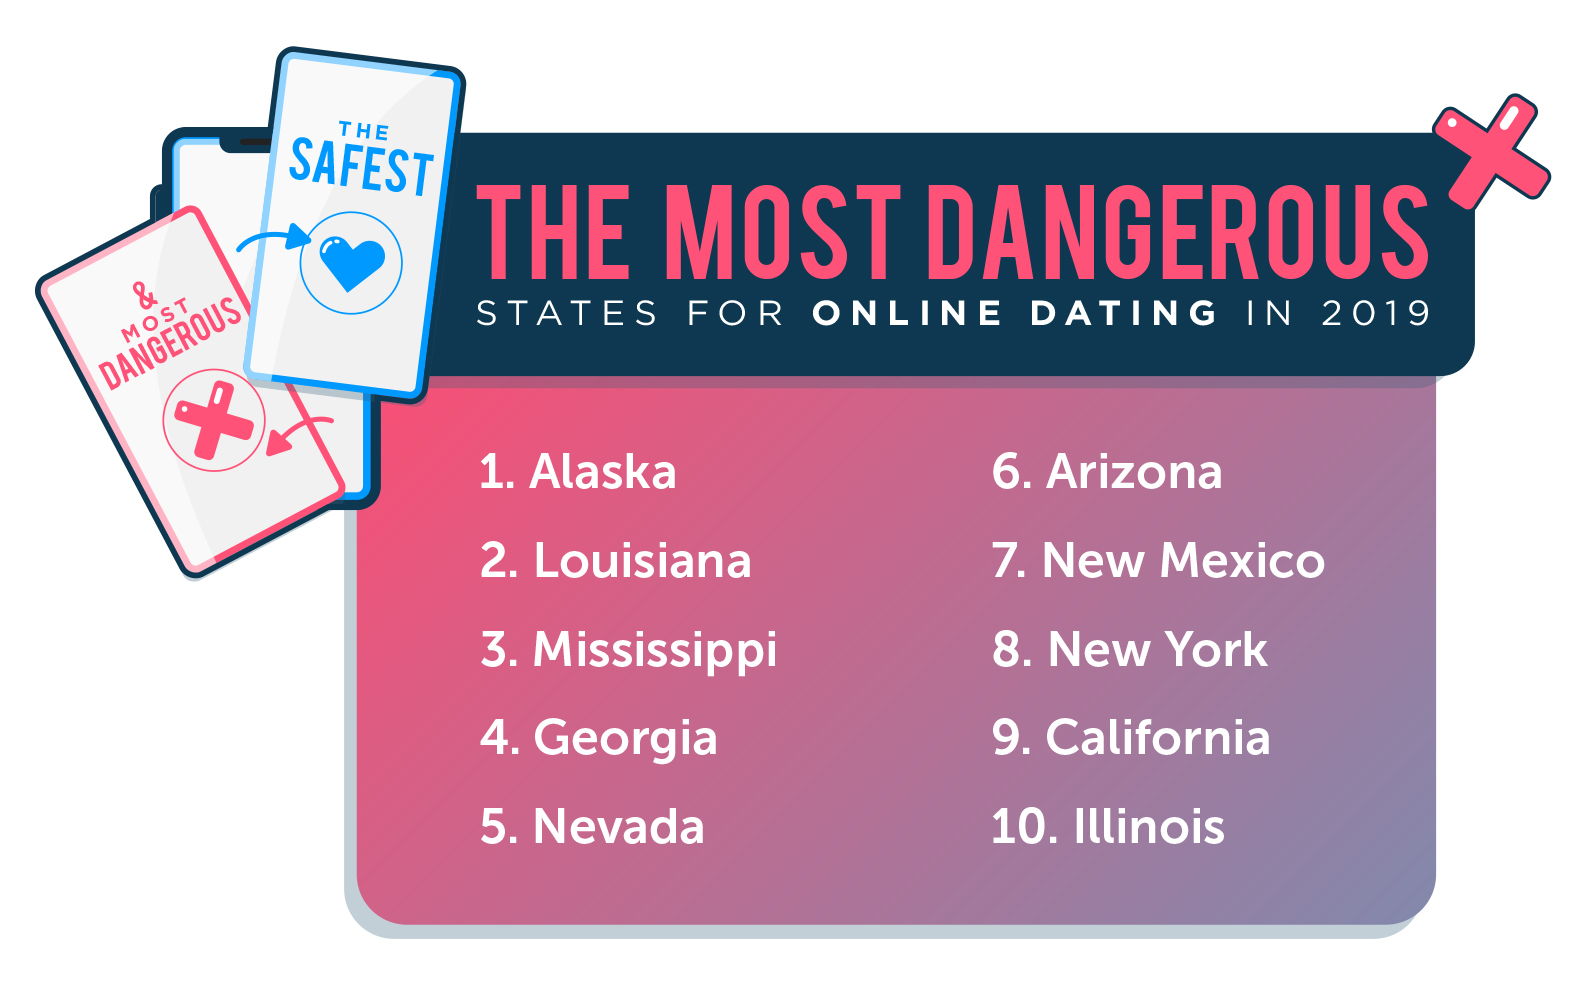 10 Most Dangerous States for Online Dating 2019 Image